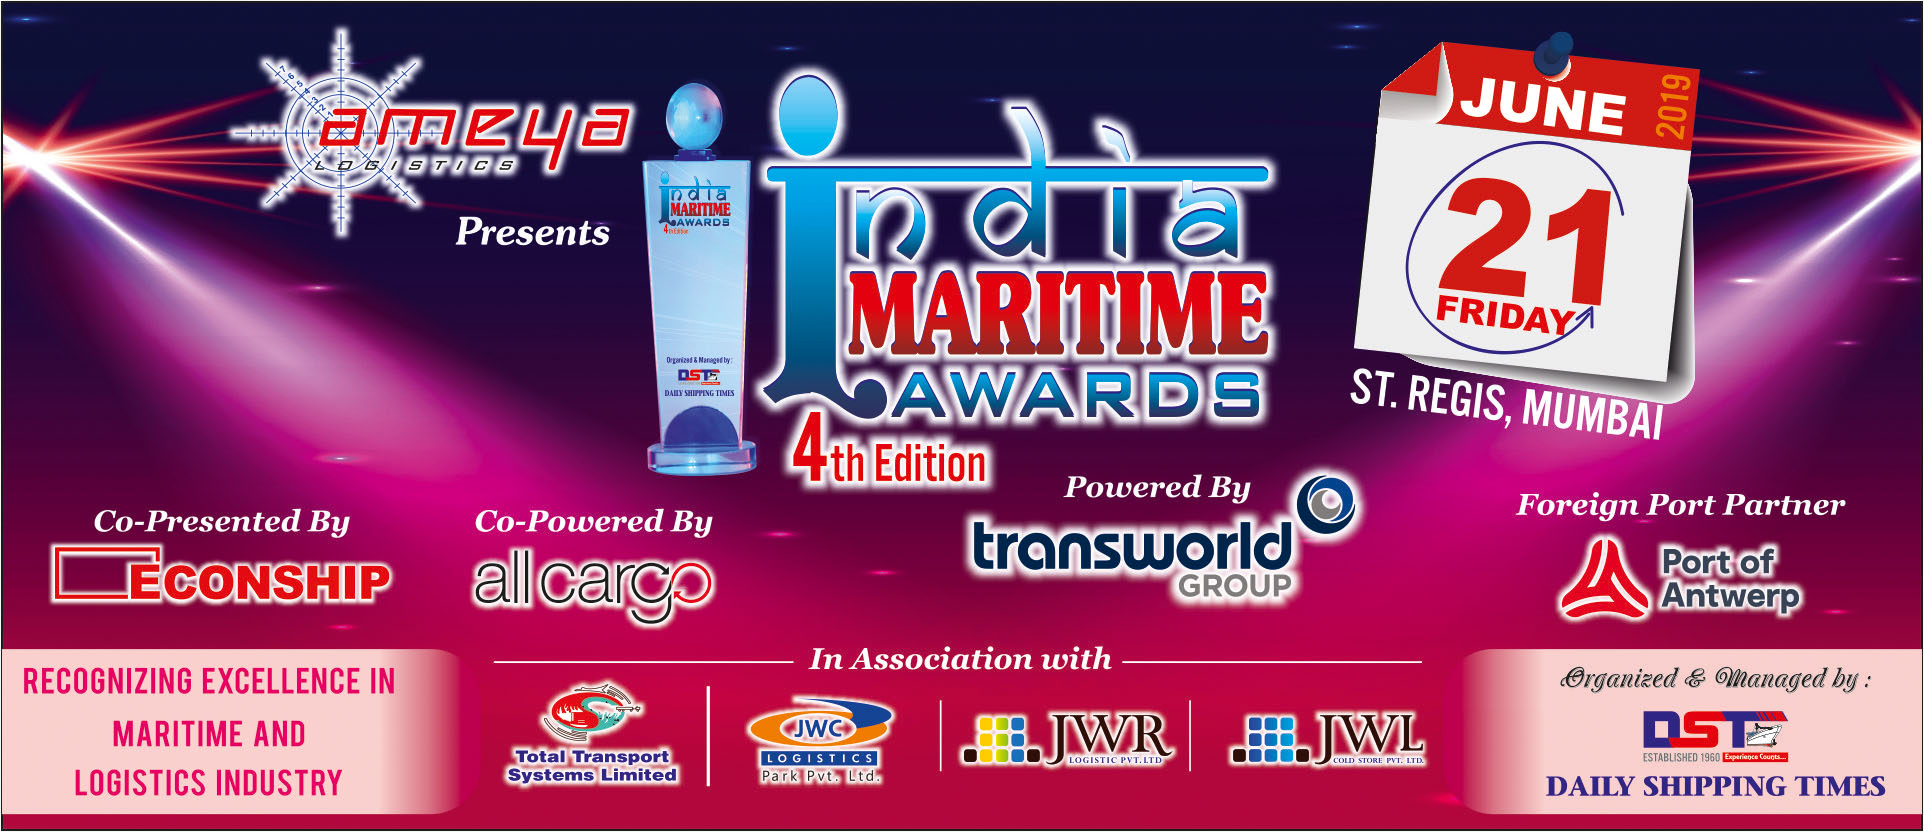 India Maritime Awards - 4th Edition